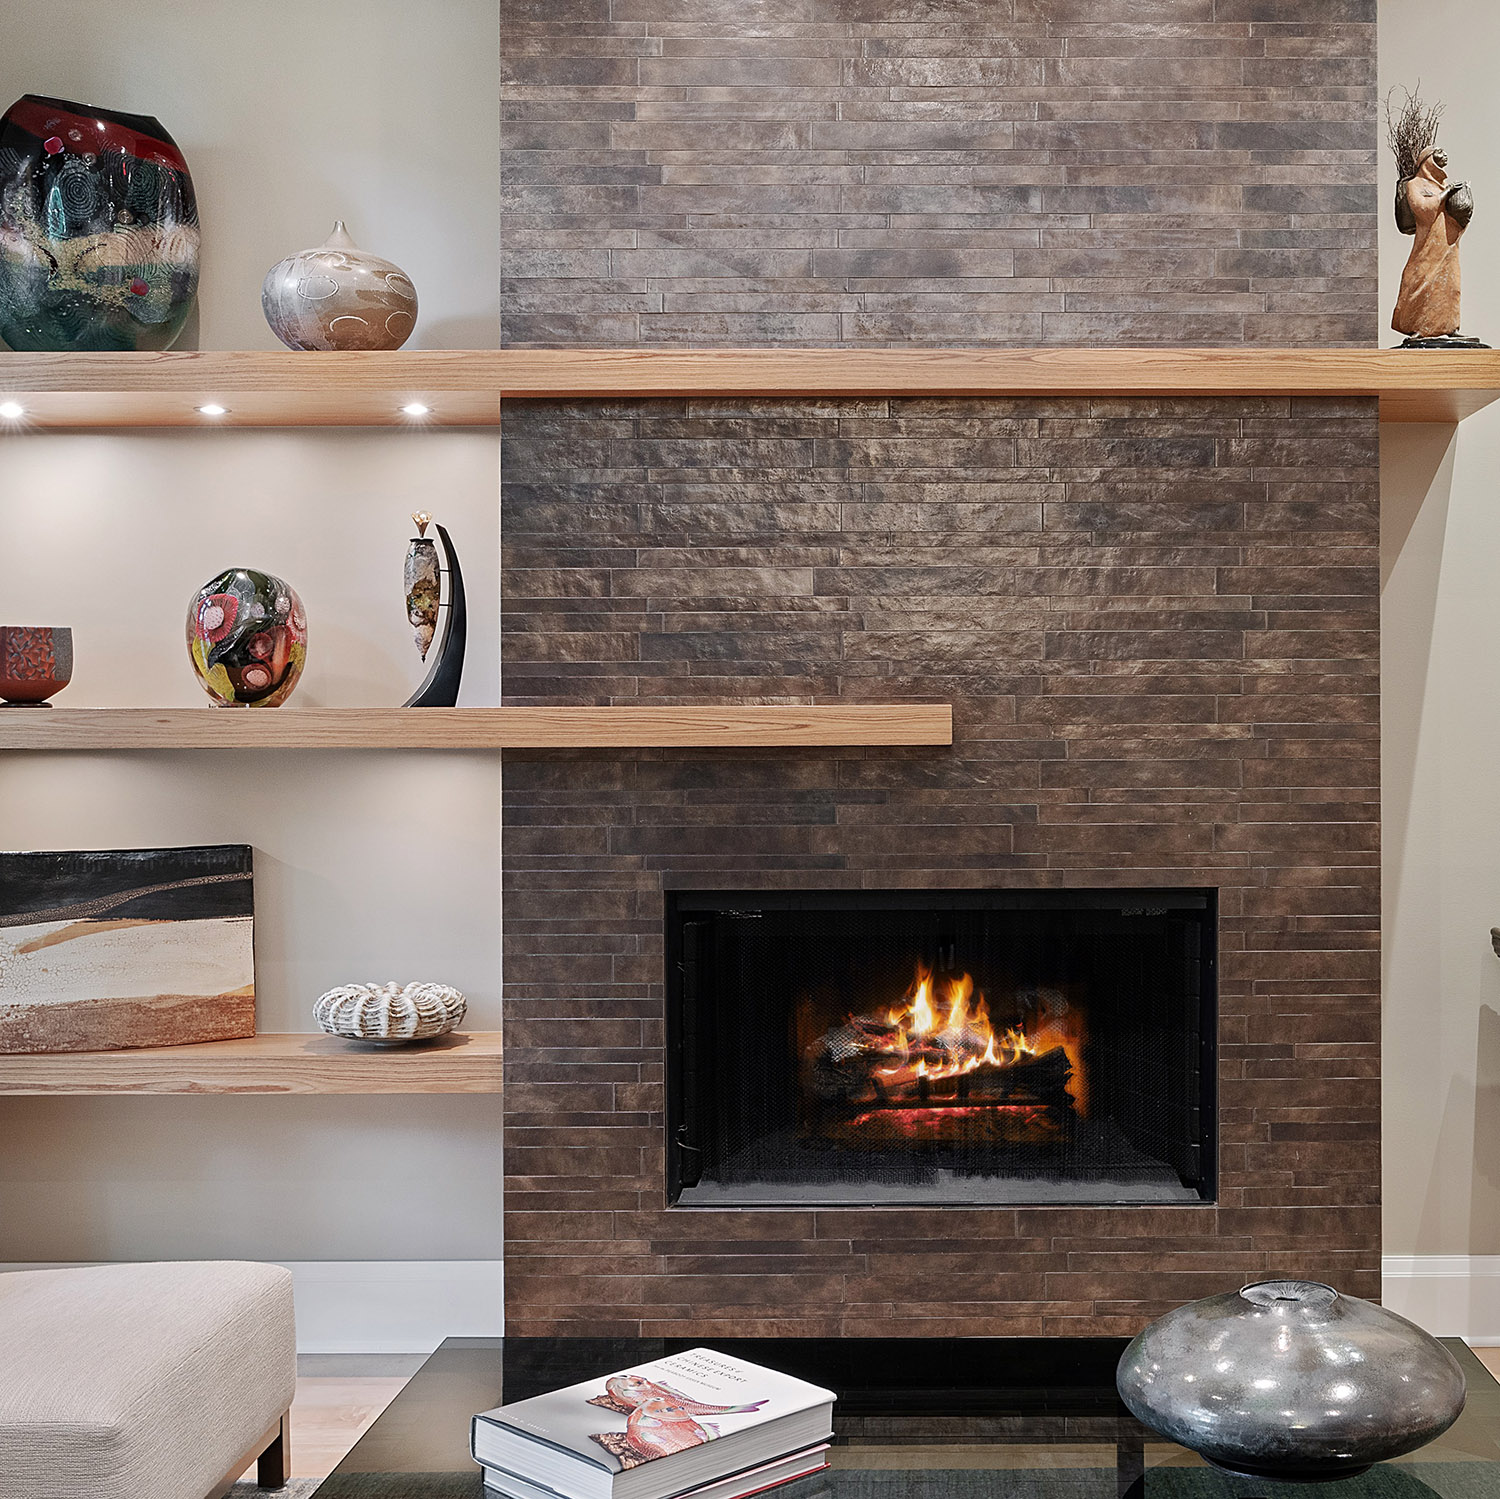 Warm and cozy fireplace in Chicago, inspired by hygge